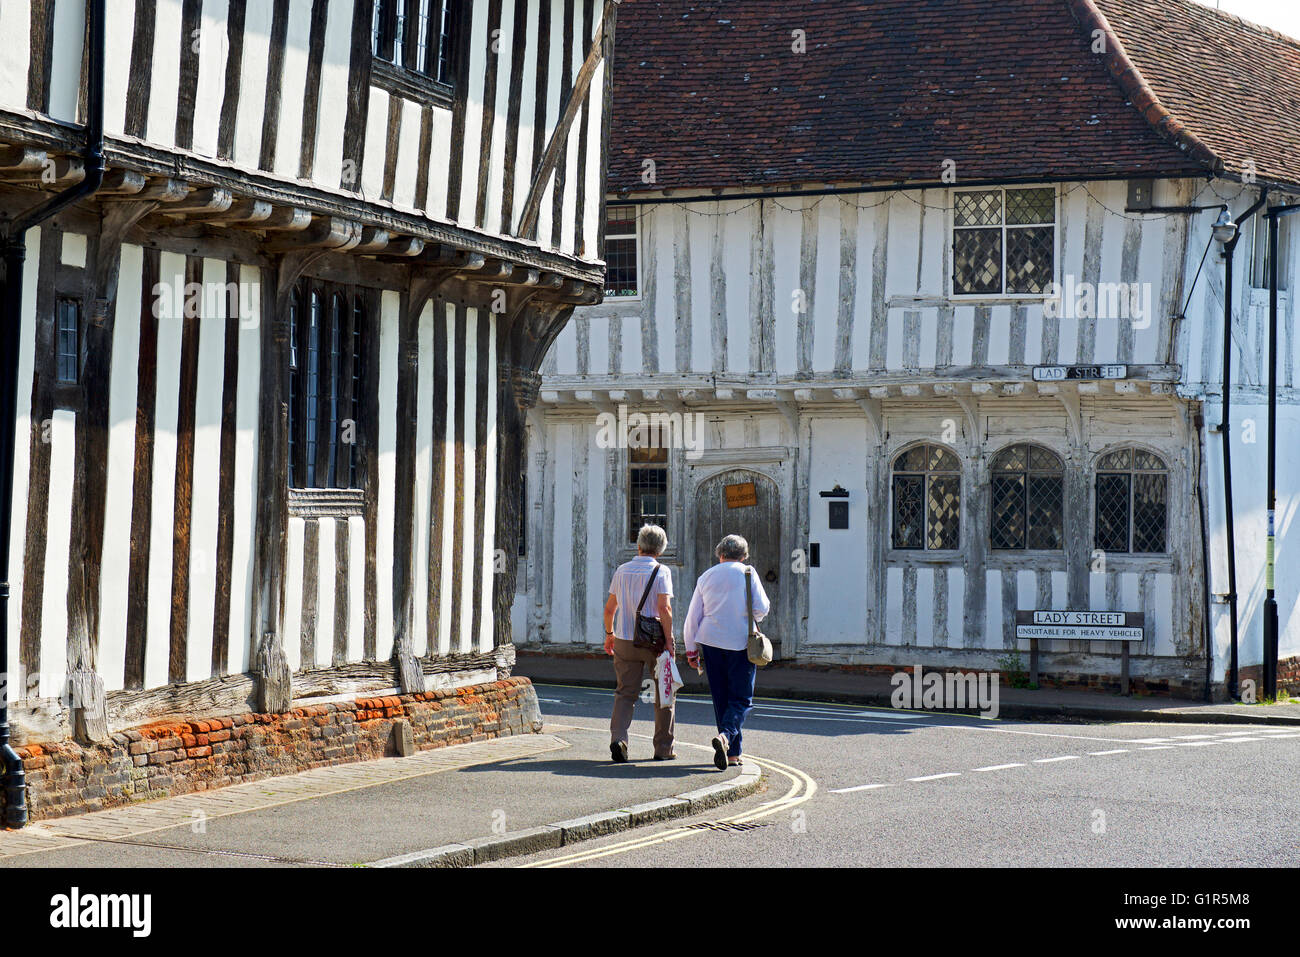 Junction of Water Street and Lady Street in the village of Lavenham, Suffolk, England UK - Stock Image